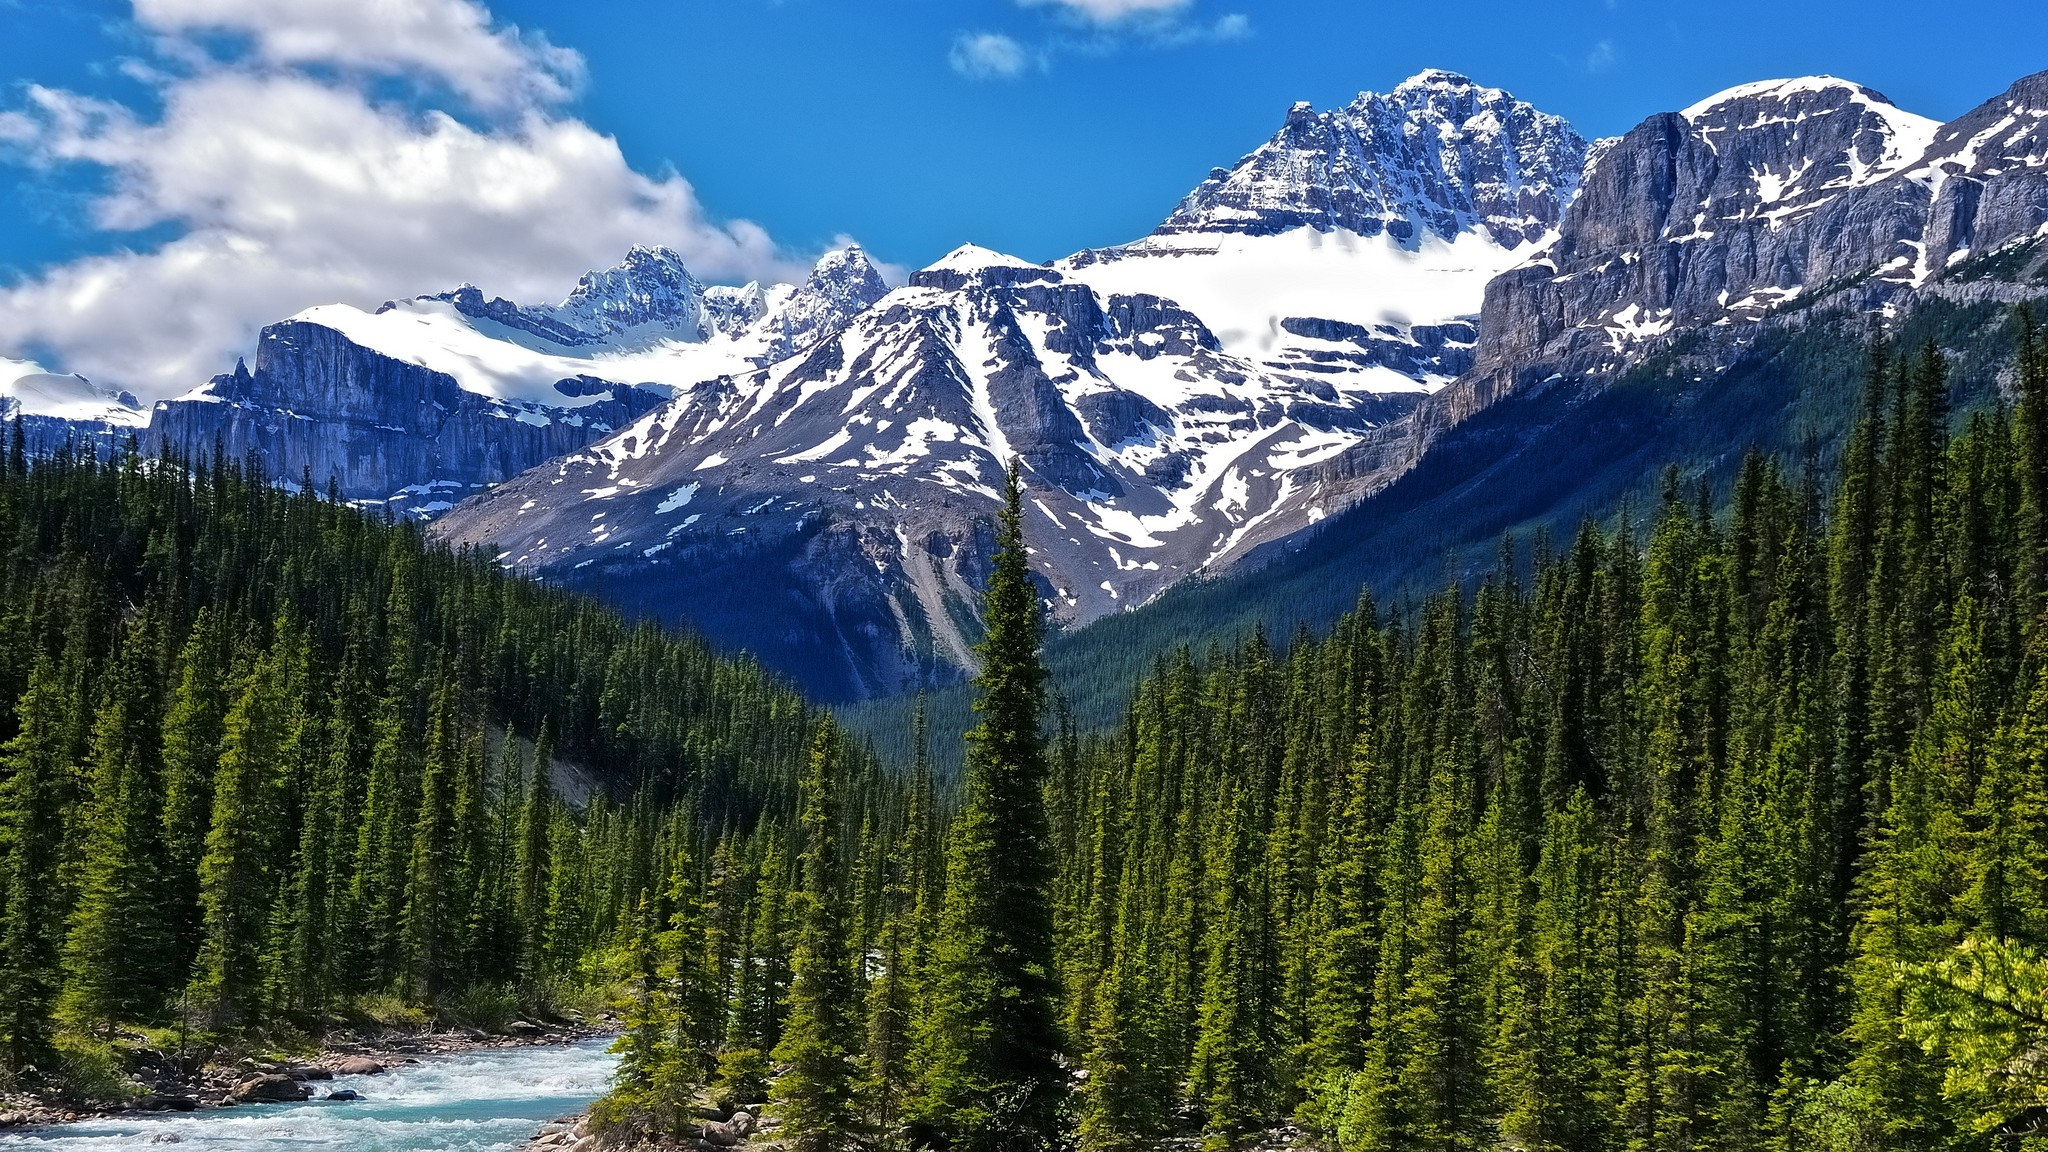 blue canadian rockies wallpaper 2048x1152 185248 WallpaperUP 2048x1152